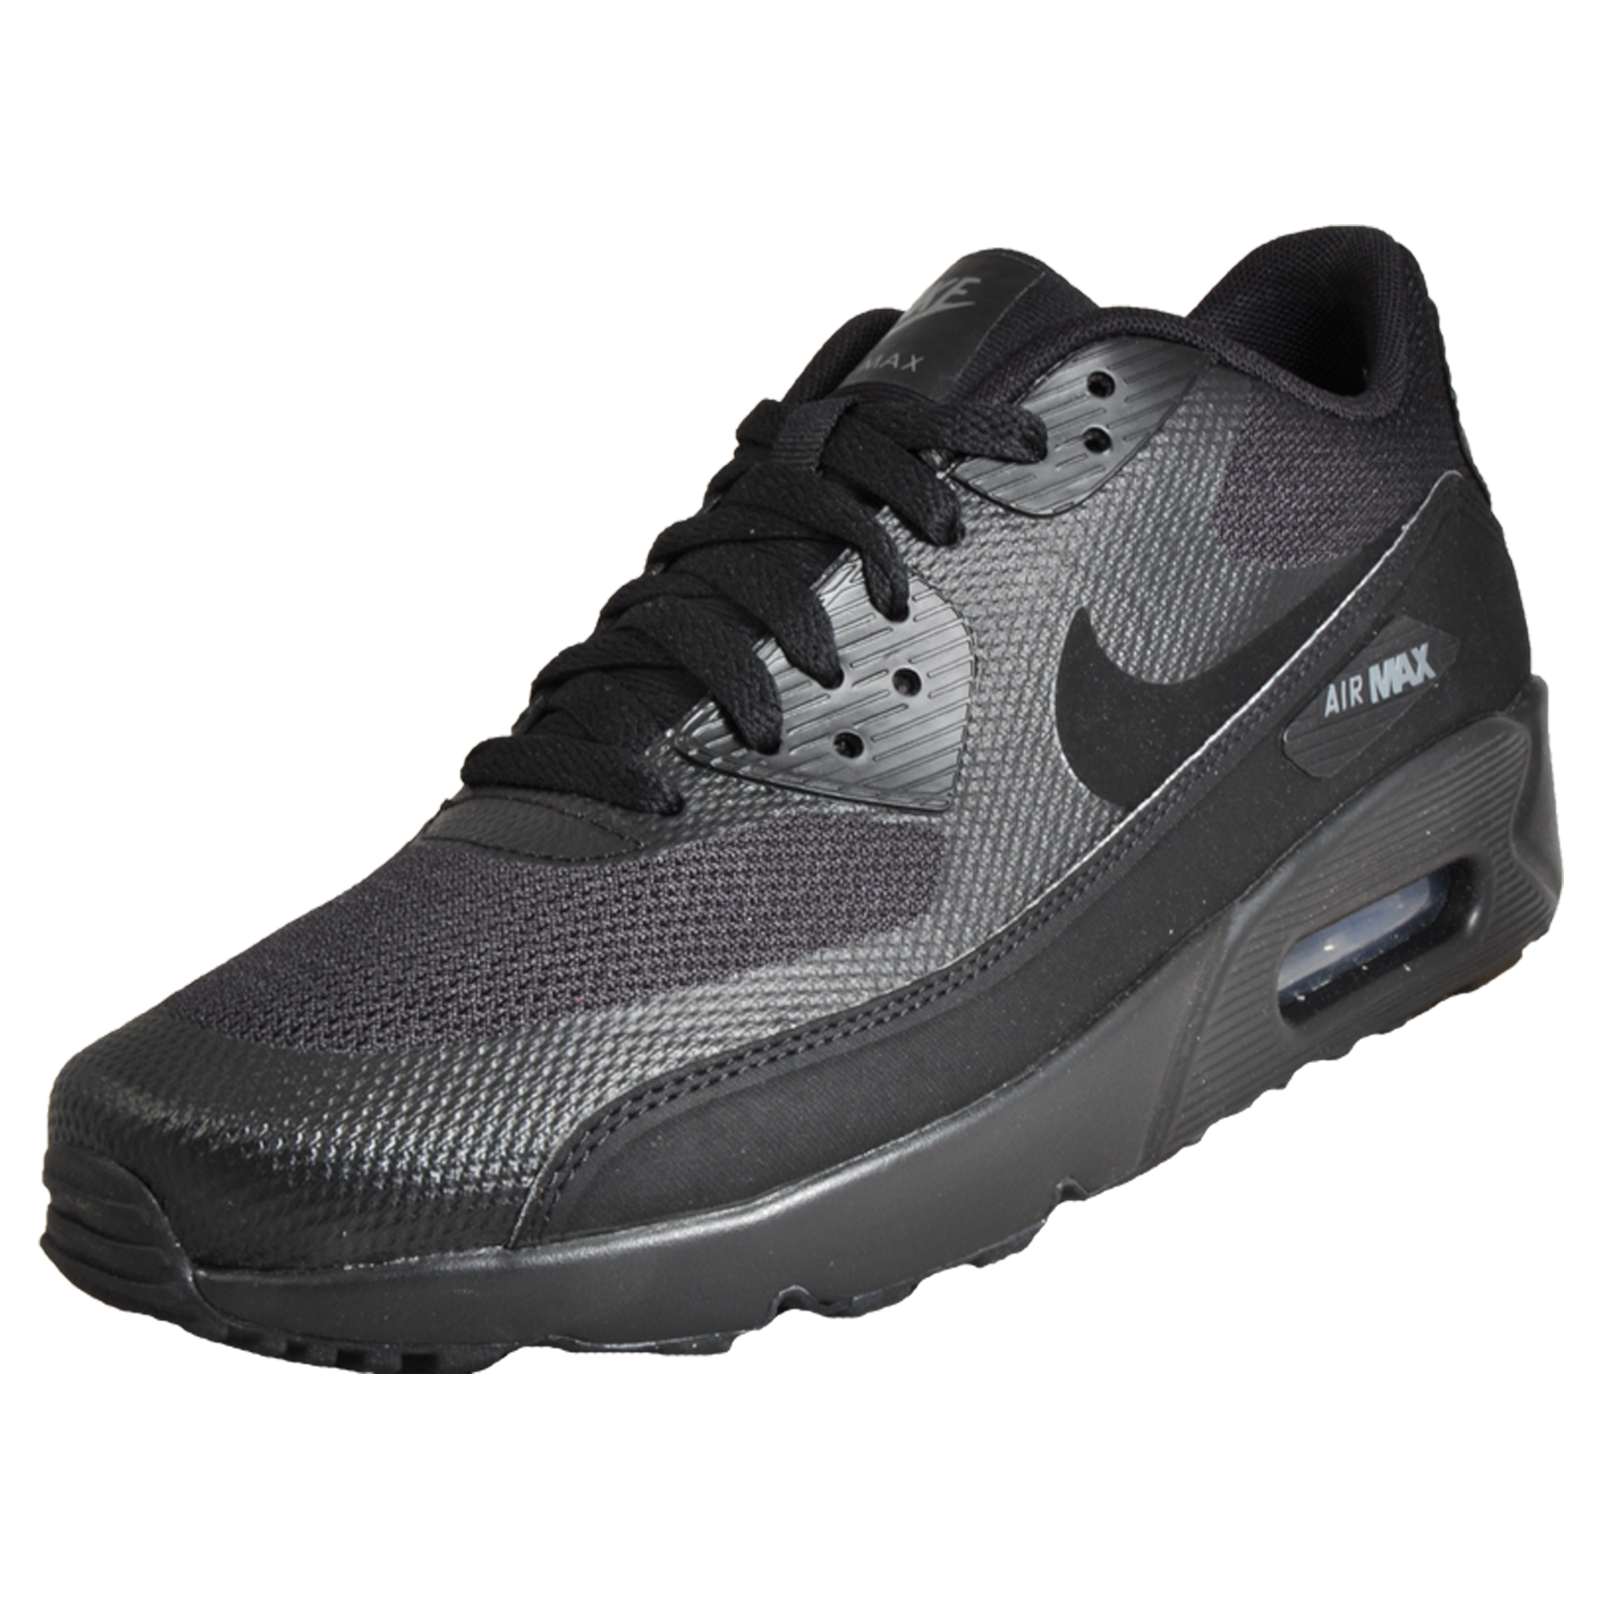 sale retailer a5ec4 49f32 Nike Air Max 90 Ultra 2 Essential Men s Classic Casual Retro Trainers Black